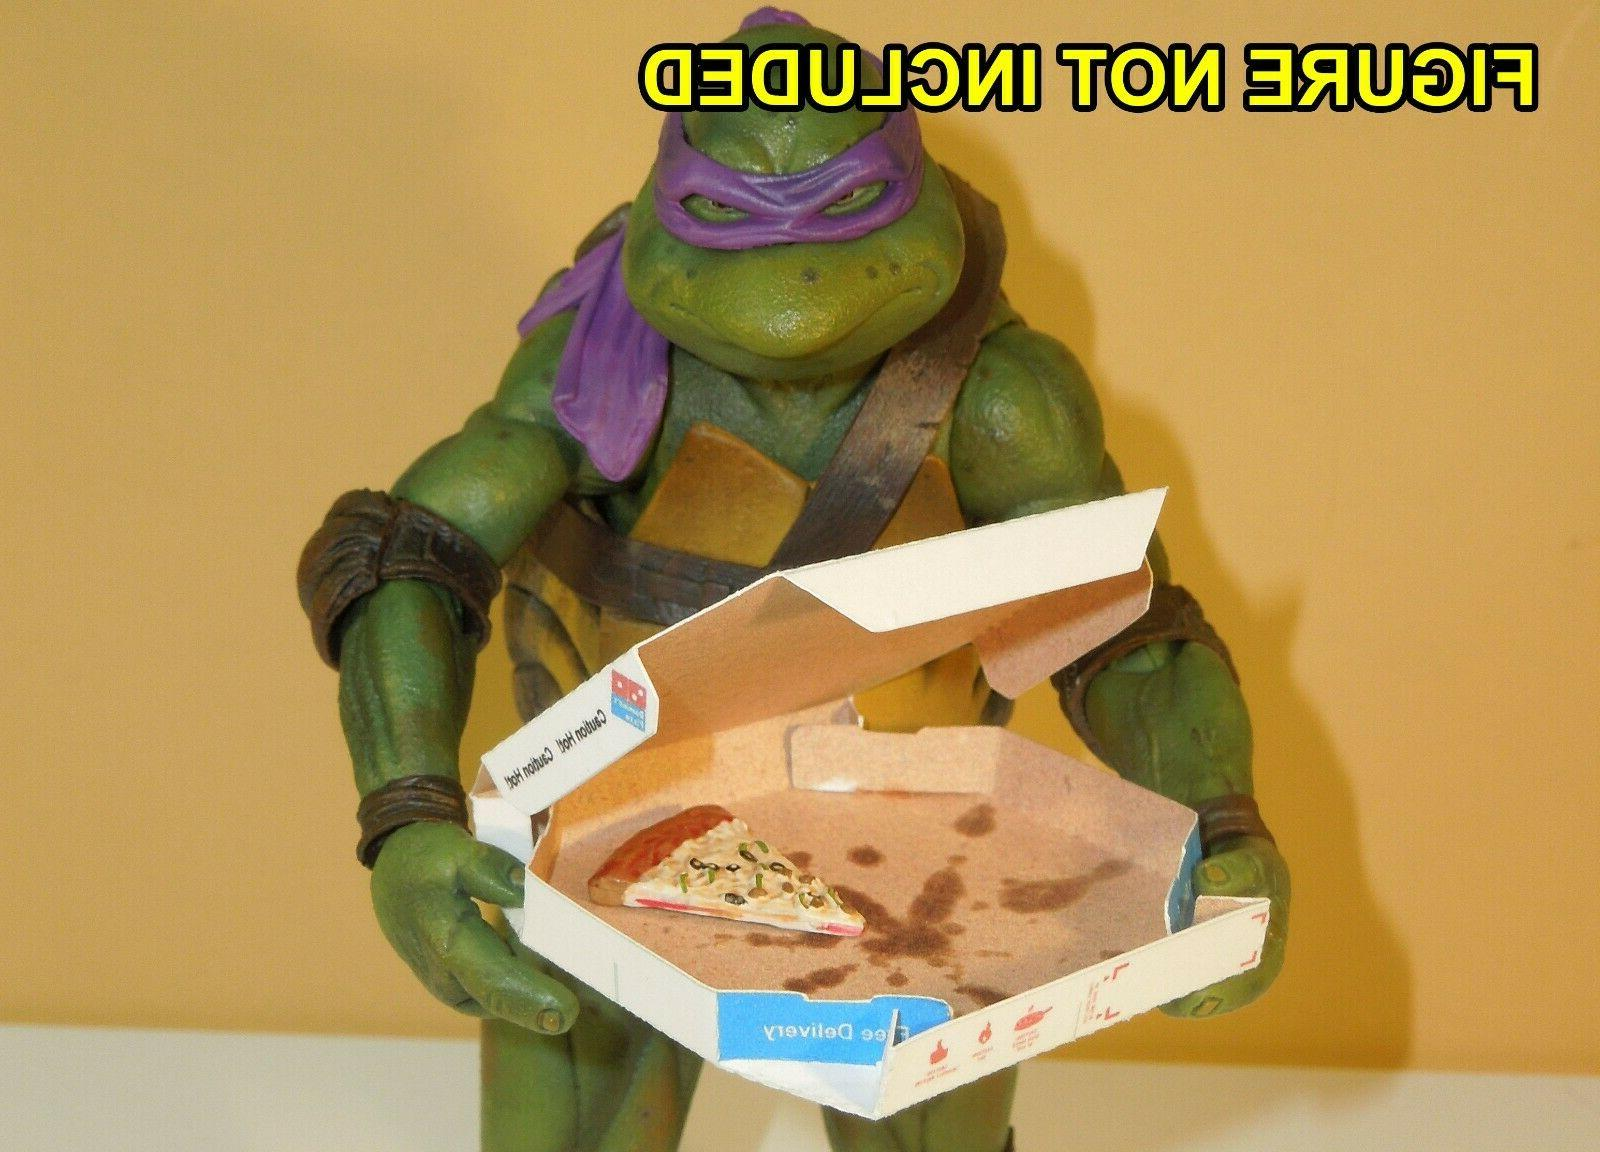 unfolded 3 Easy Fold Dominos Pizza Boxes for 1//6 Scale Action Figures